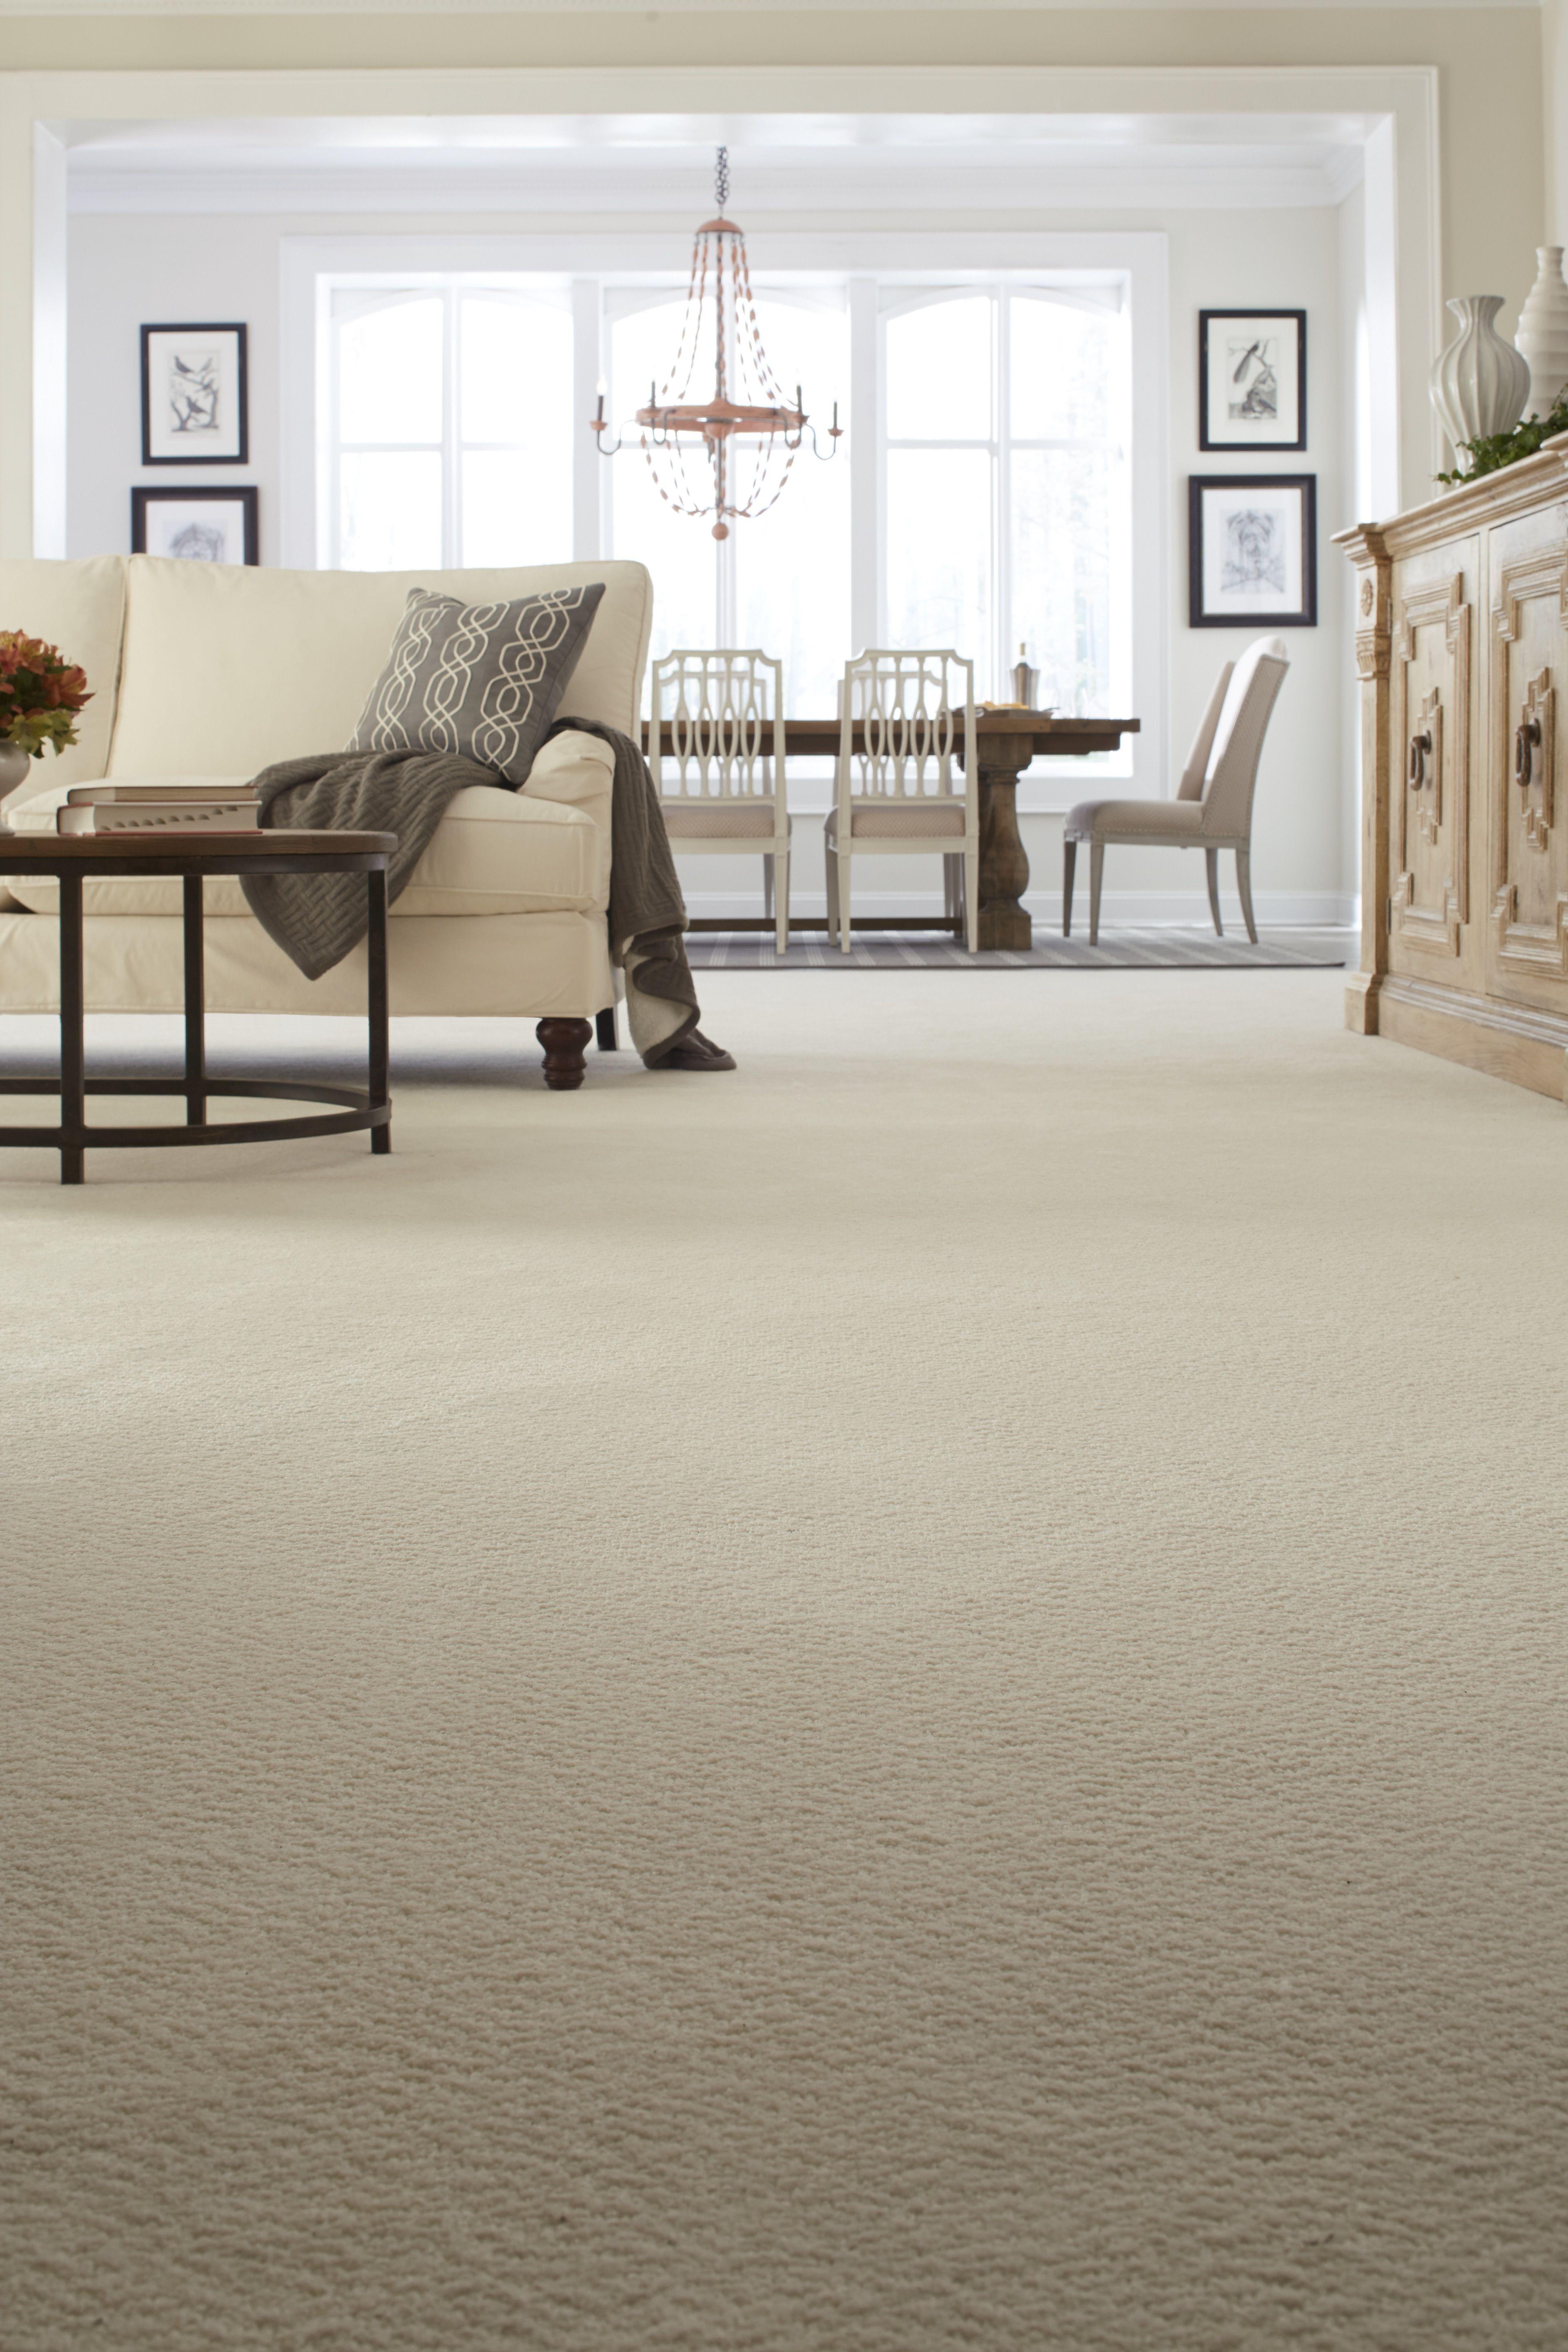 The new Astor Row Karastan carpet   National Karastan Month     The new Astor Row Karastan carpet